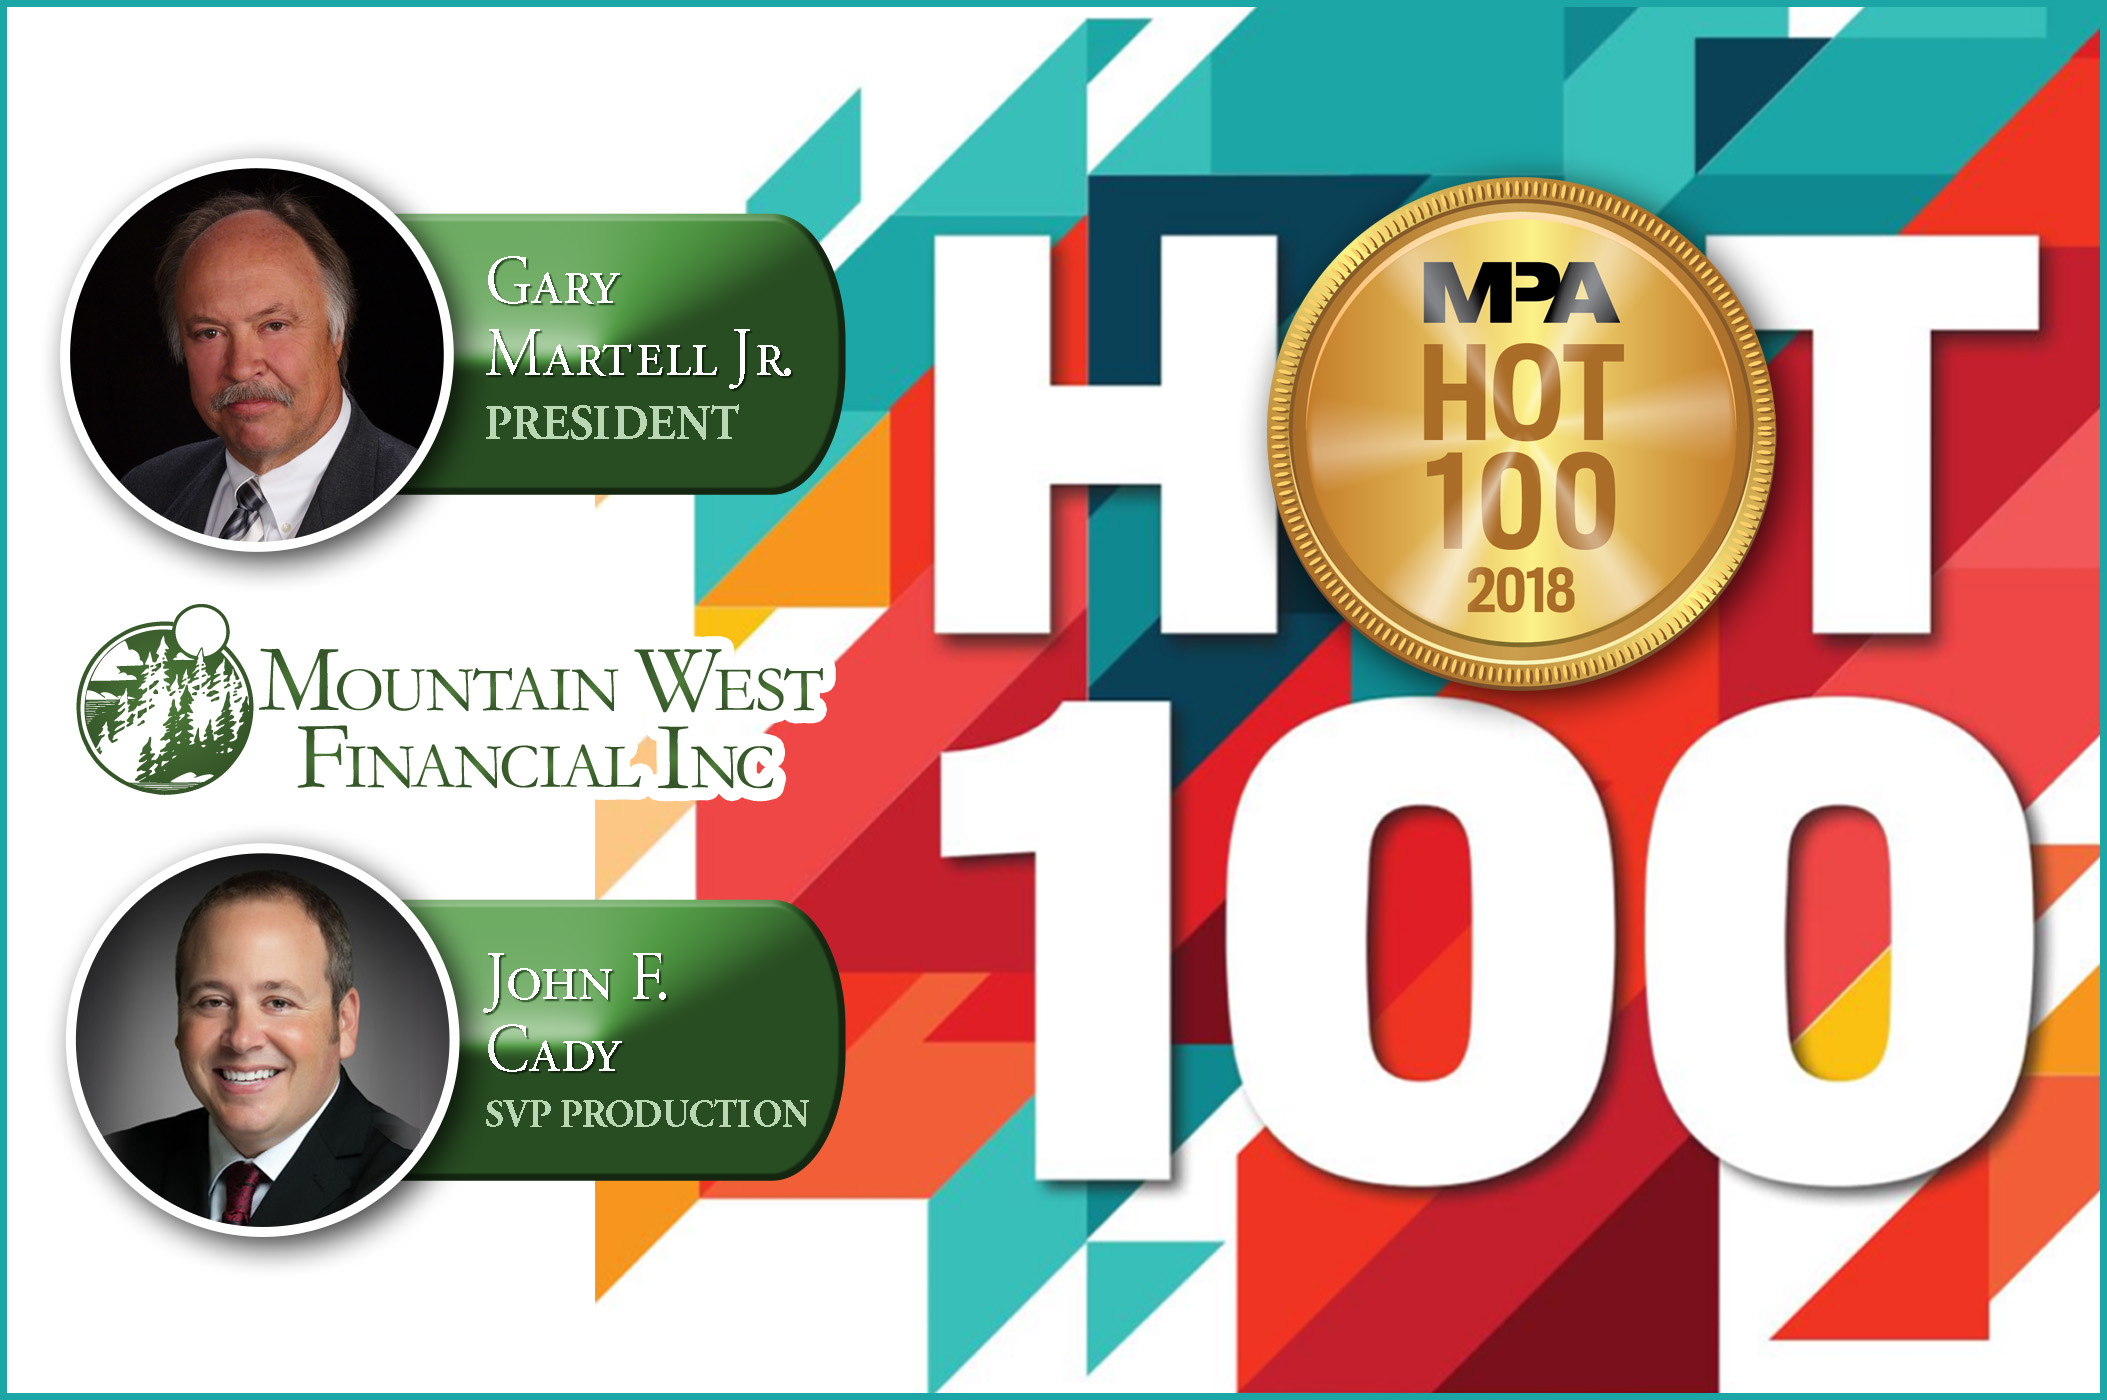 Mountain West Financial Executives Win National Hot 100 Award